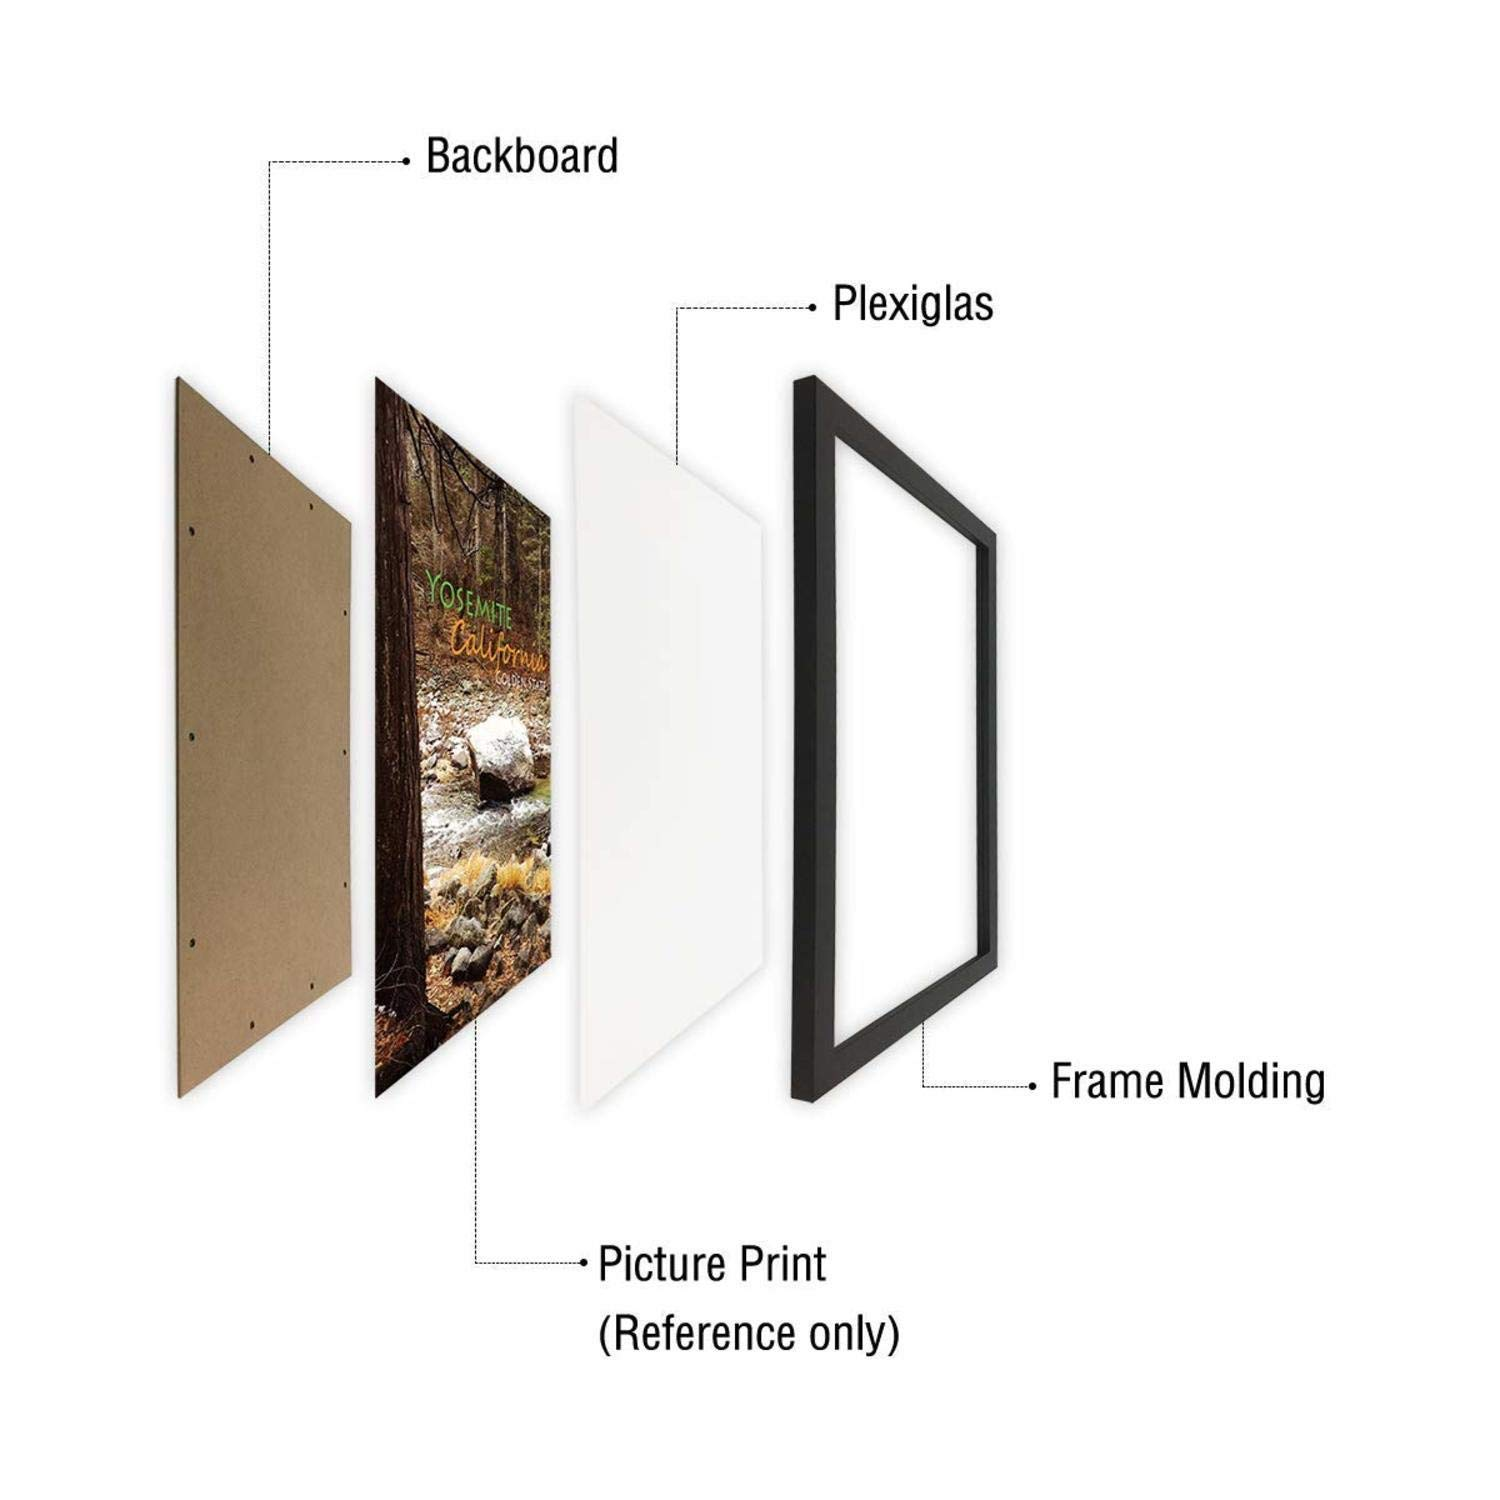 Simple and Stylish FT2040x1-CLFT-MPB1824-1 18x24 Inch Poster Frame Black Landscape//Portrait Golden State Art Swivel Tabs